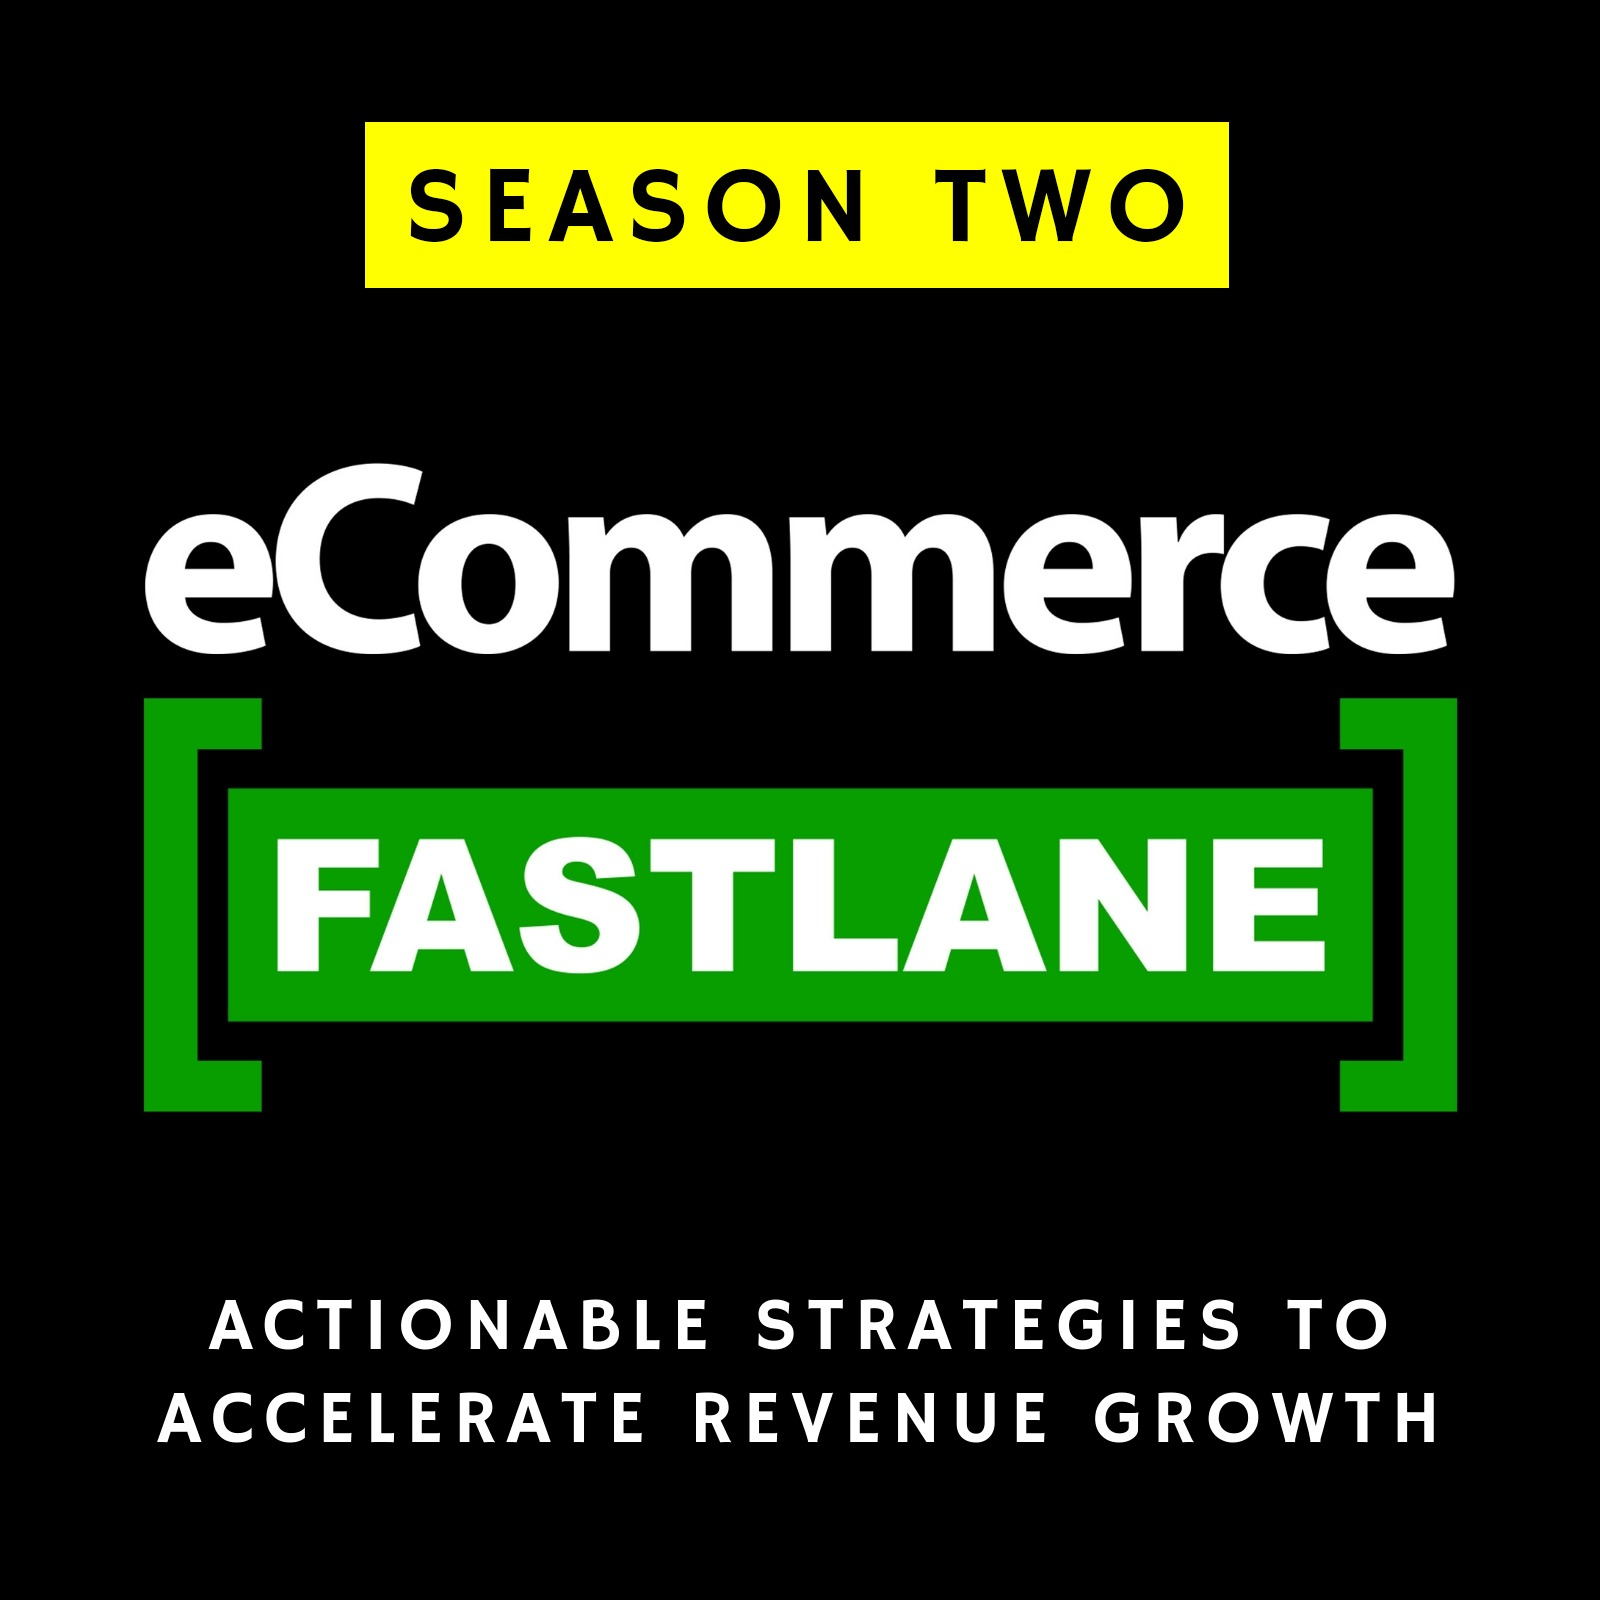 eCommerce Fastlane - Thriving with Shopify